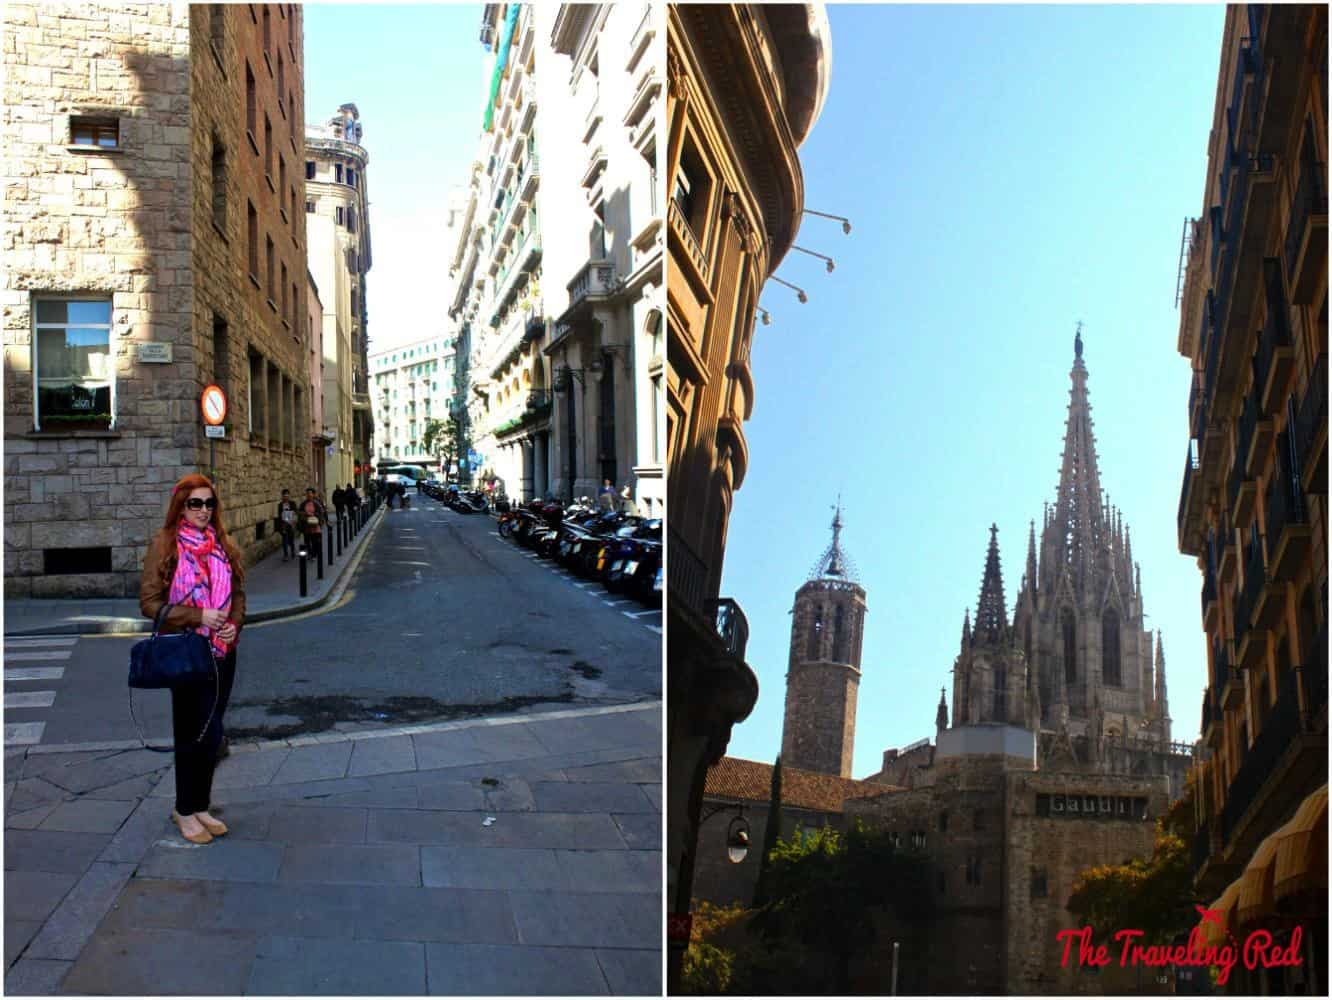 Roaming the streets near the Catedral de Barcelona in Barcelona, Spain.